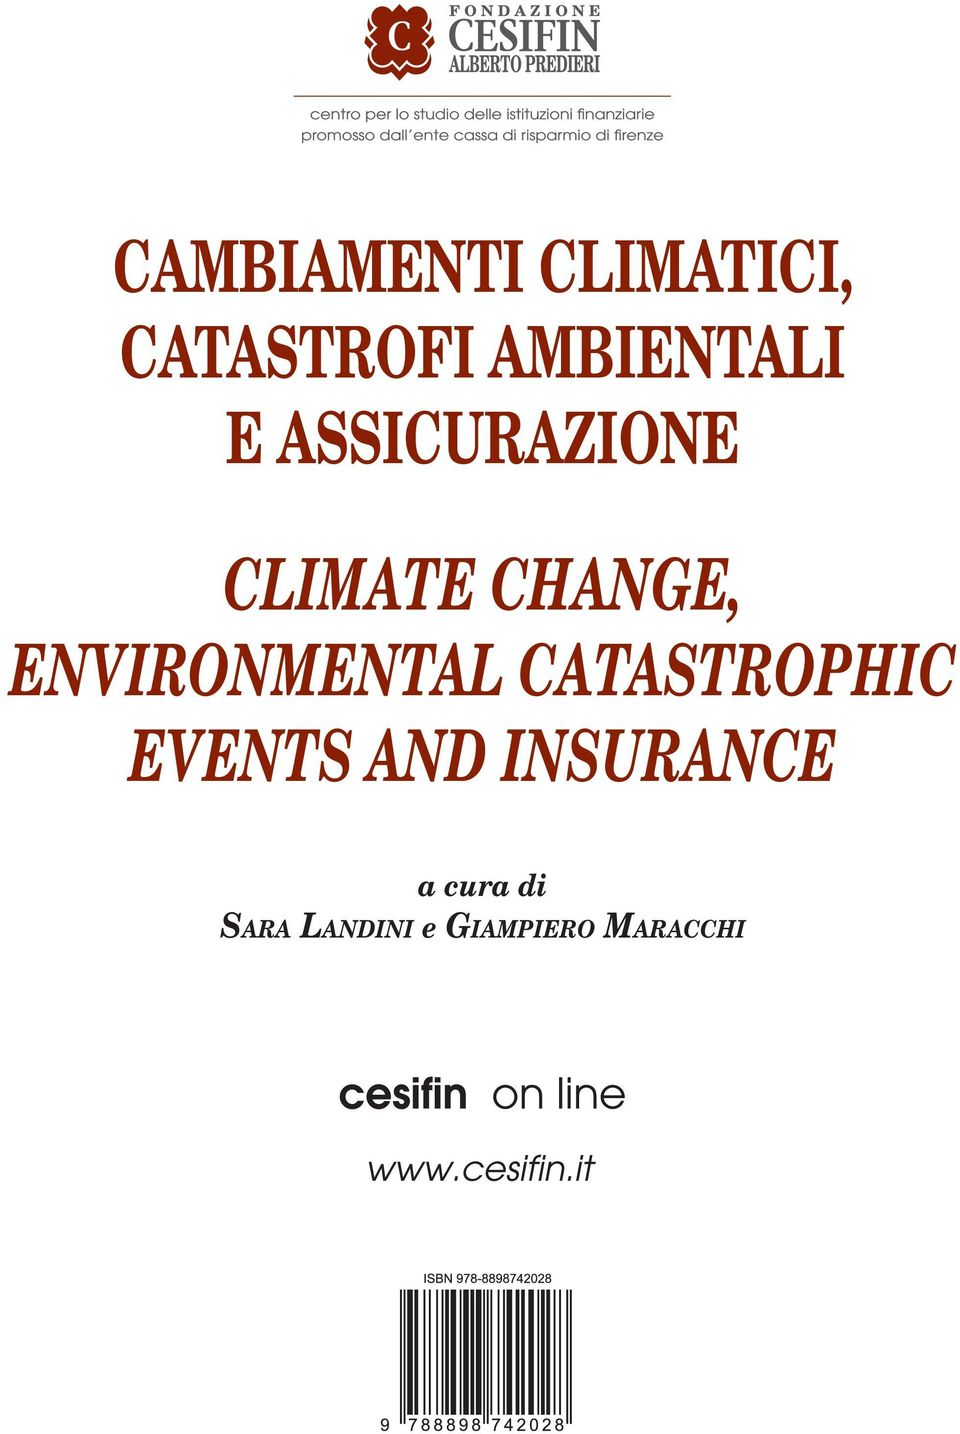 CHANGE, ENVIRONMENTAL CATASTROPHIC EVENTS